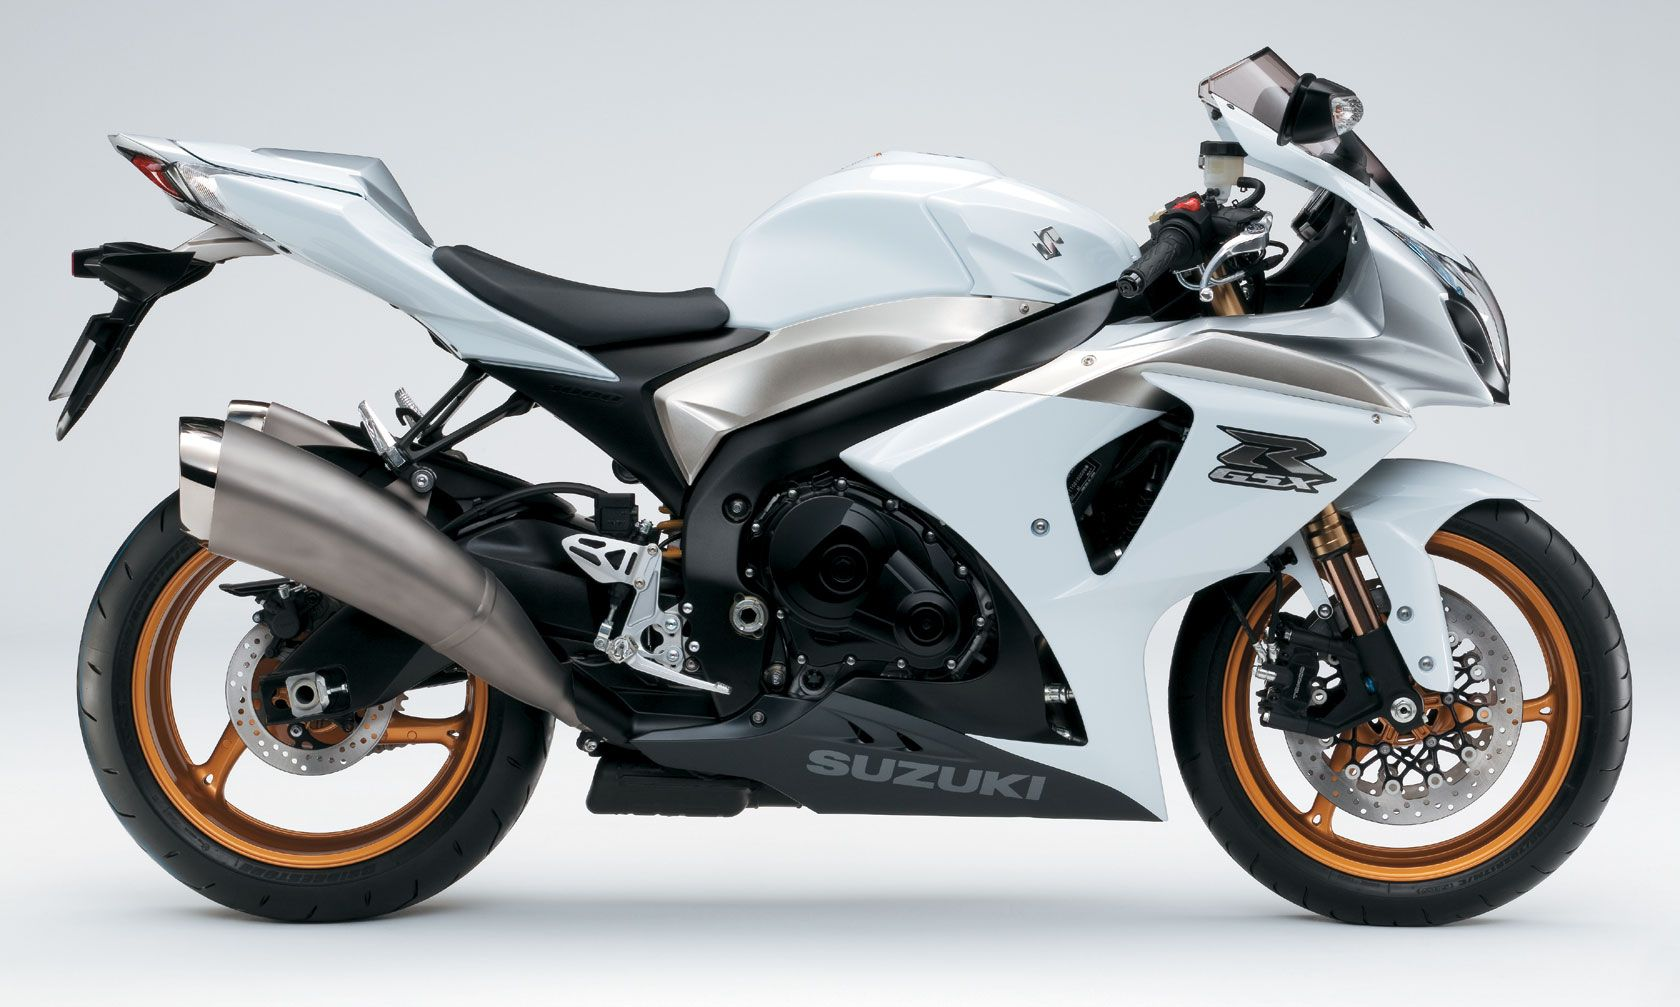 Suzuki gsx r1000d sports bike hd wallpaper